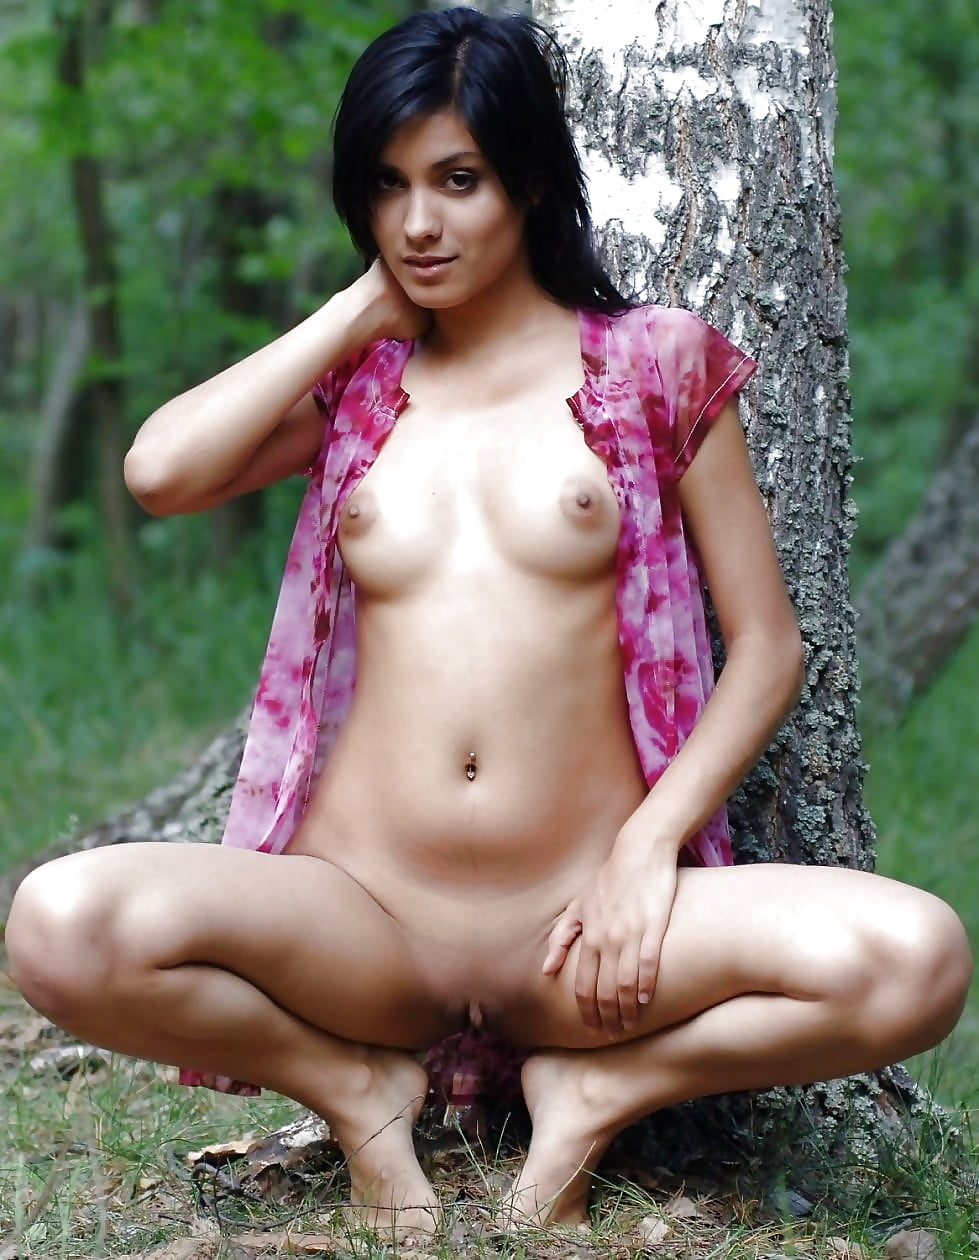 Pakistan naked girls fuking pictur, tiny tween sex stories